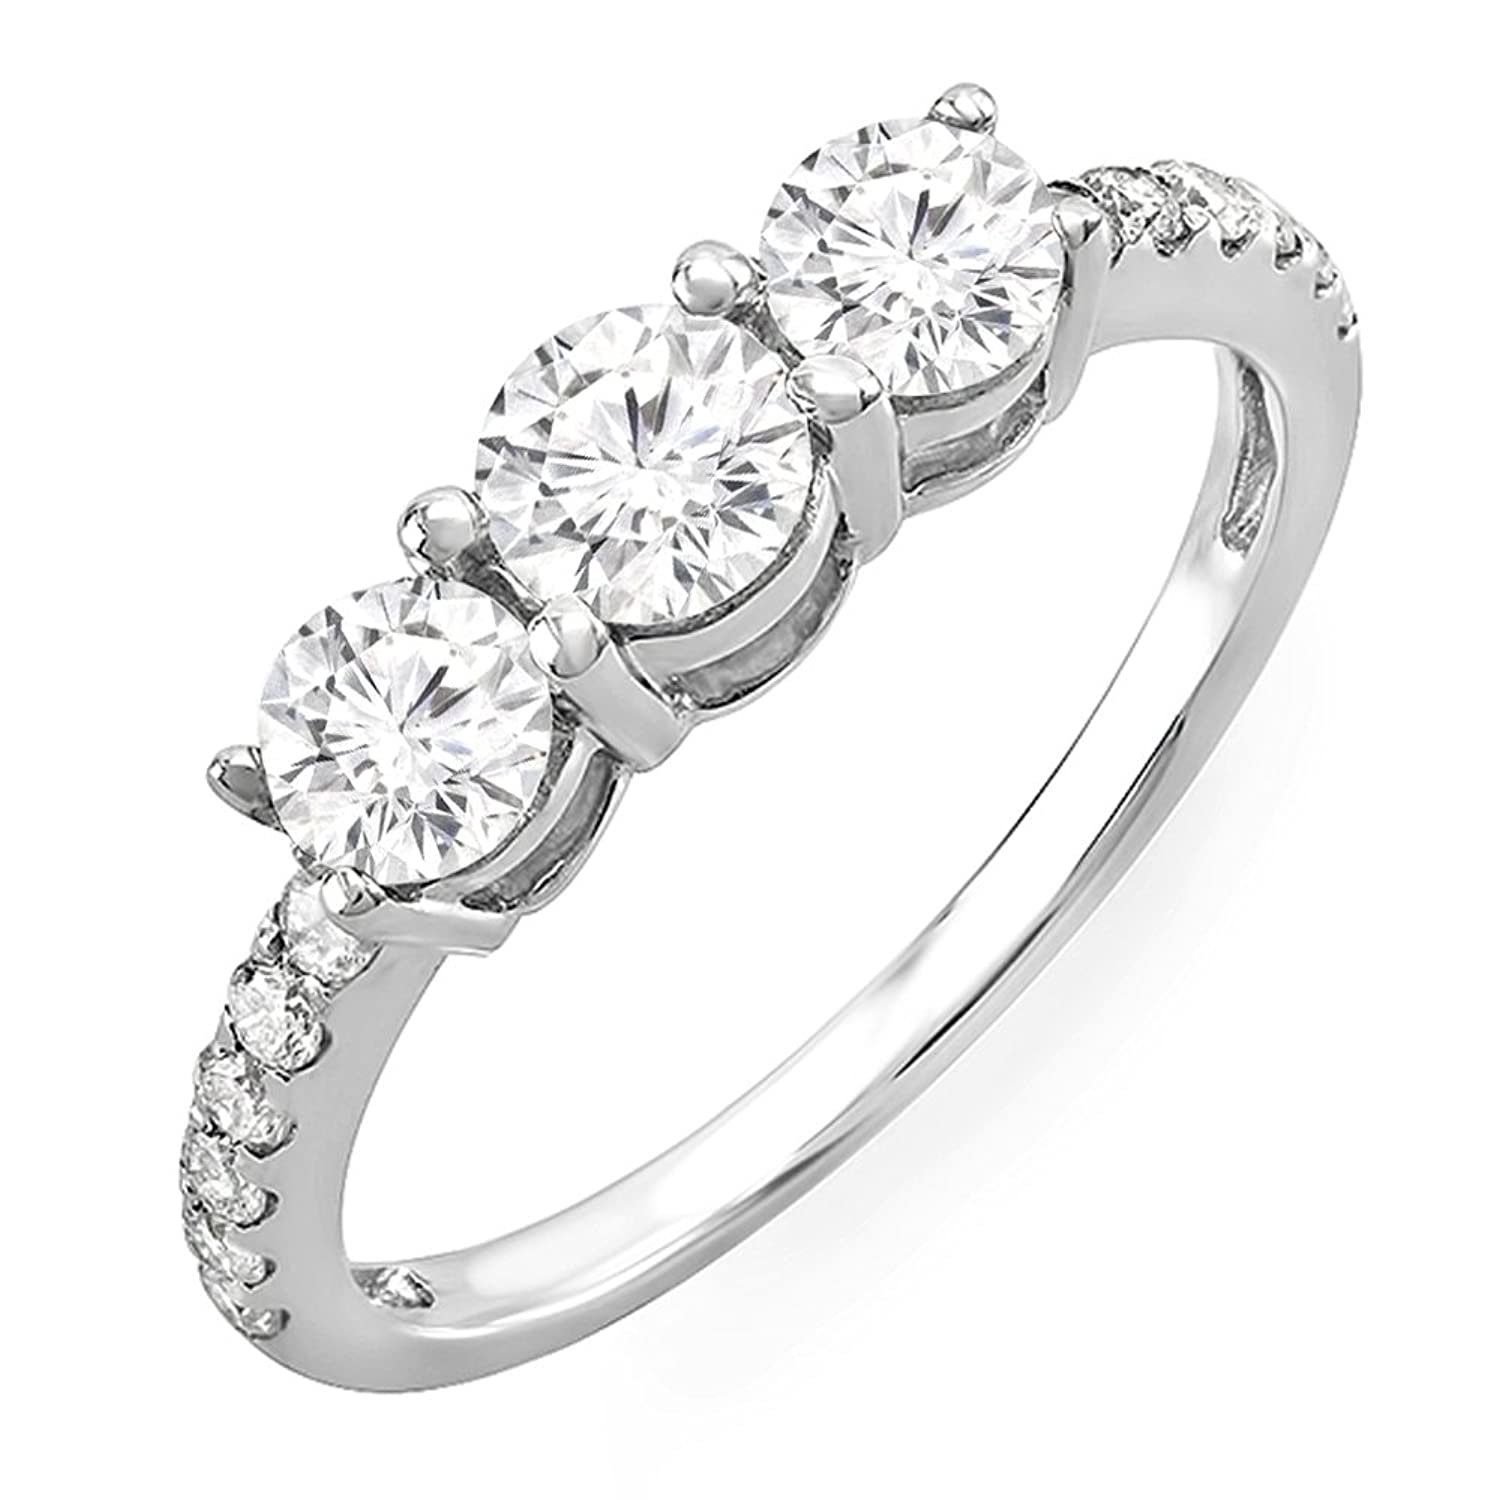 0.90 Carat (ctw) 14K White Gold Round Diamond 3 Stone Engagement Bridal Ring